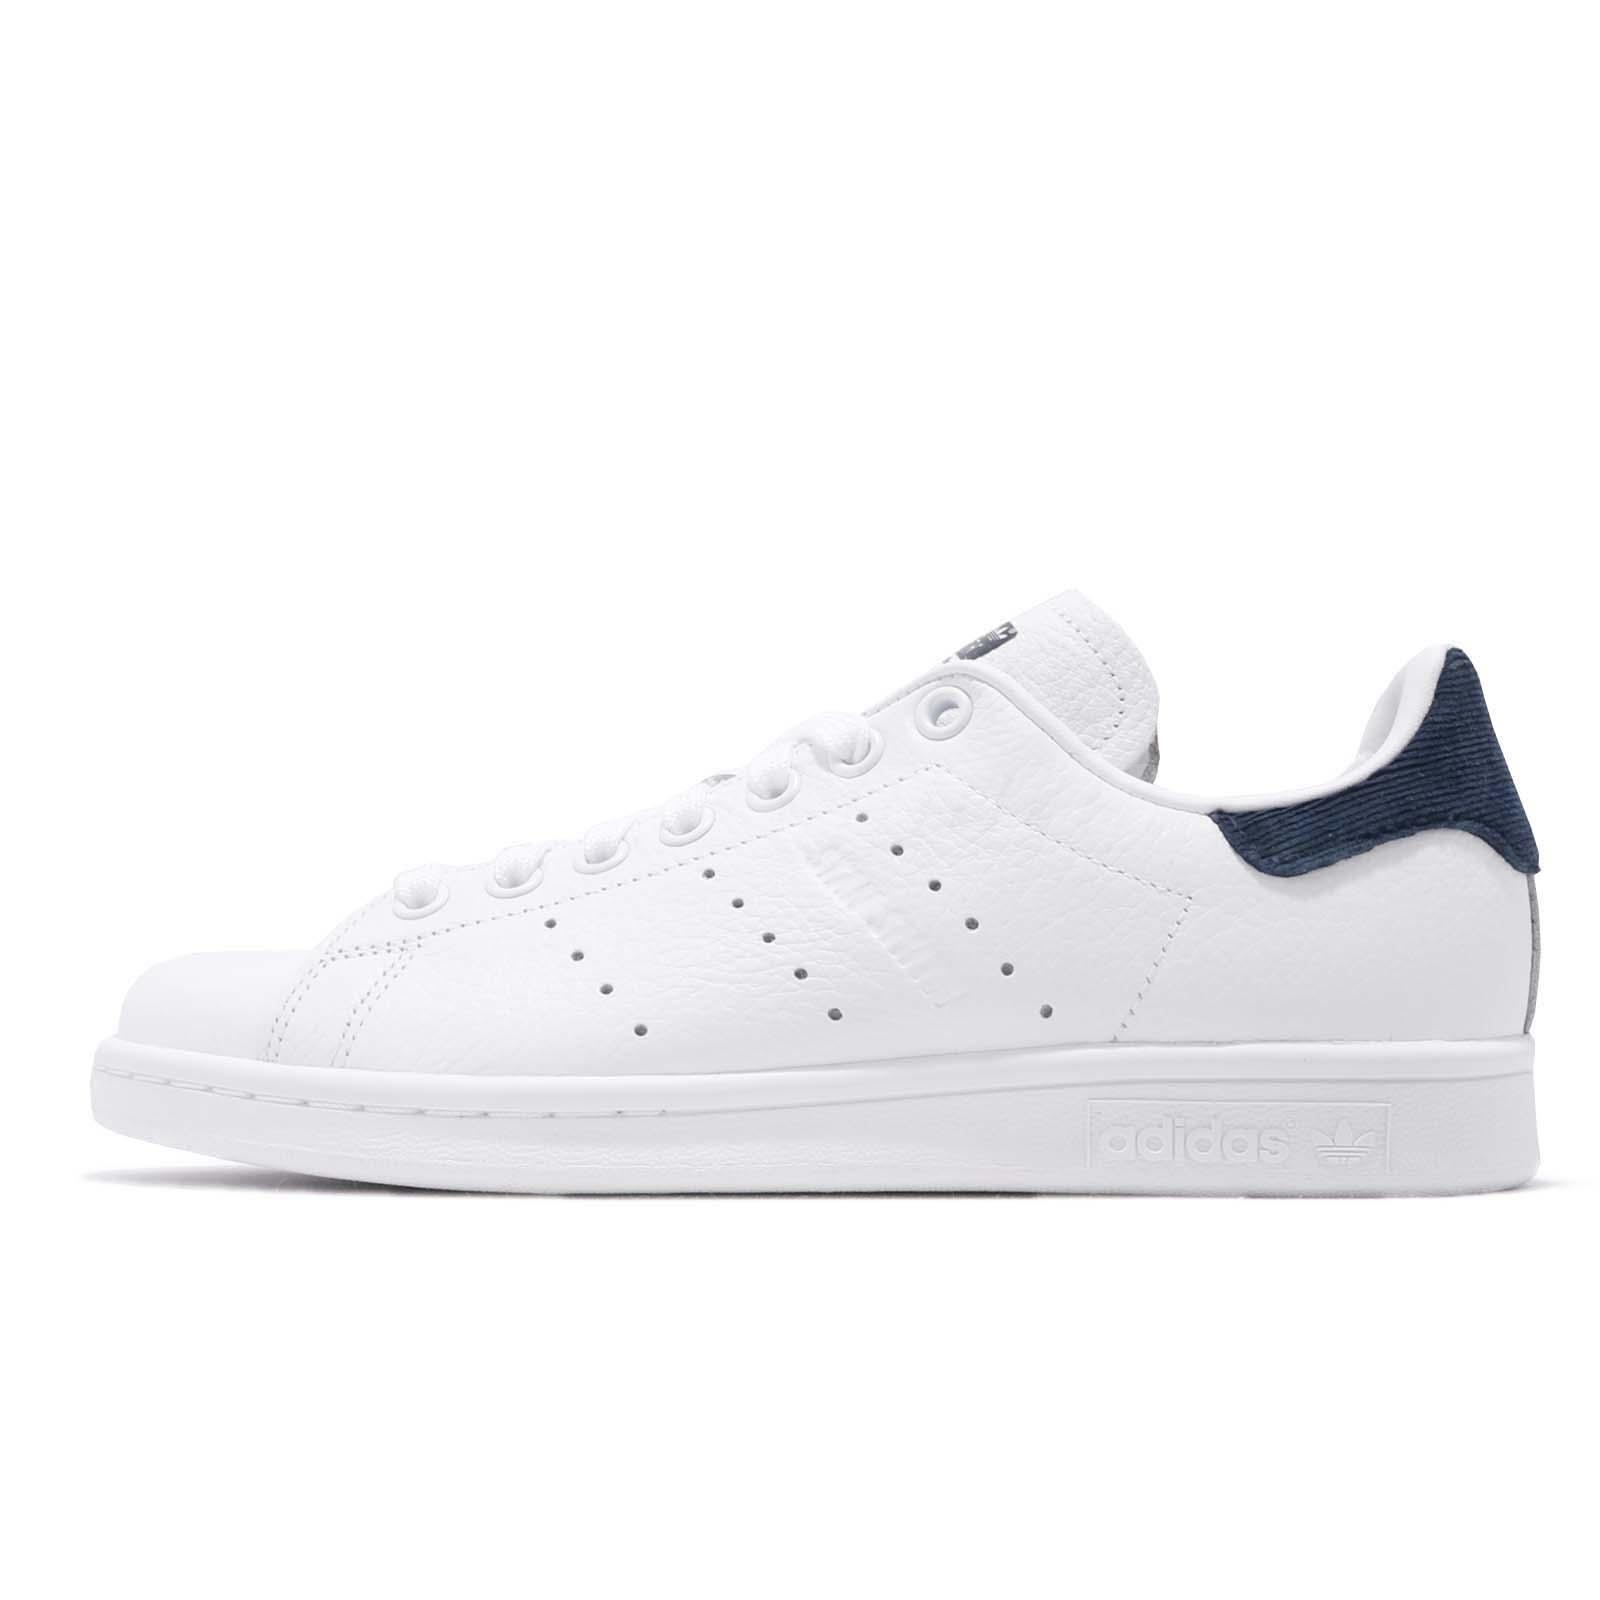 new products dfbc3 af48a Details about adidas Originals Stan Smith W White Navy Women Lifestyle  Casual Shoes B41626